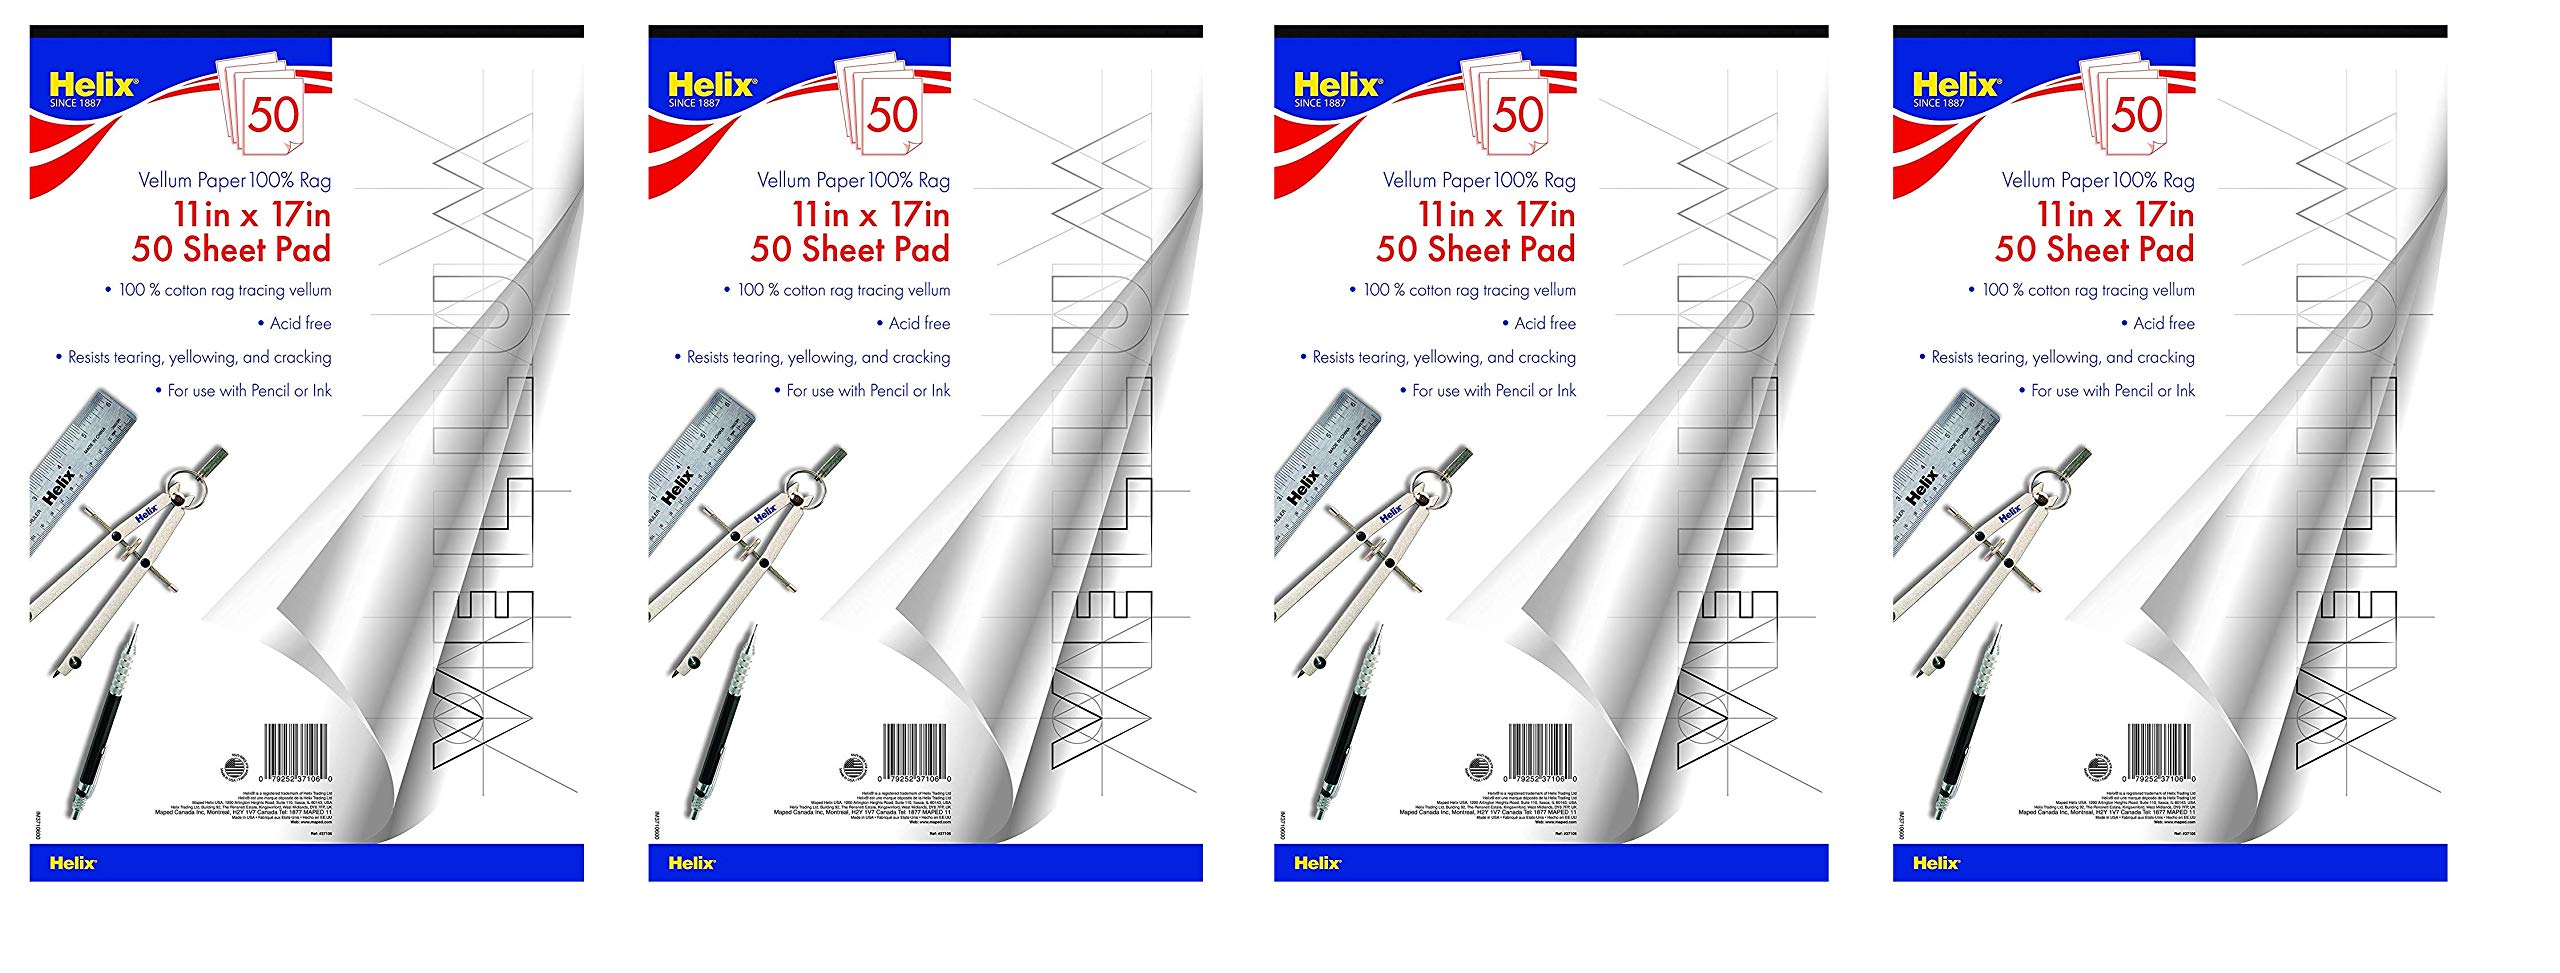 Helix Vellum Paper Pad, 100% Rag, 11 x 17 inch, 50 Sheets (37106) (4-Pack)